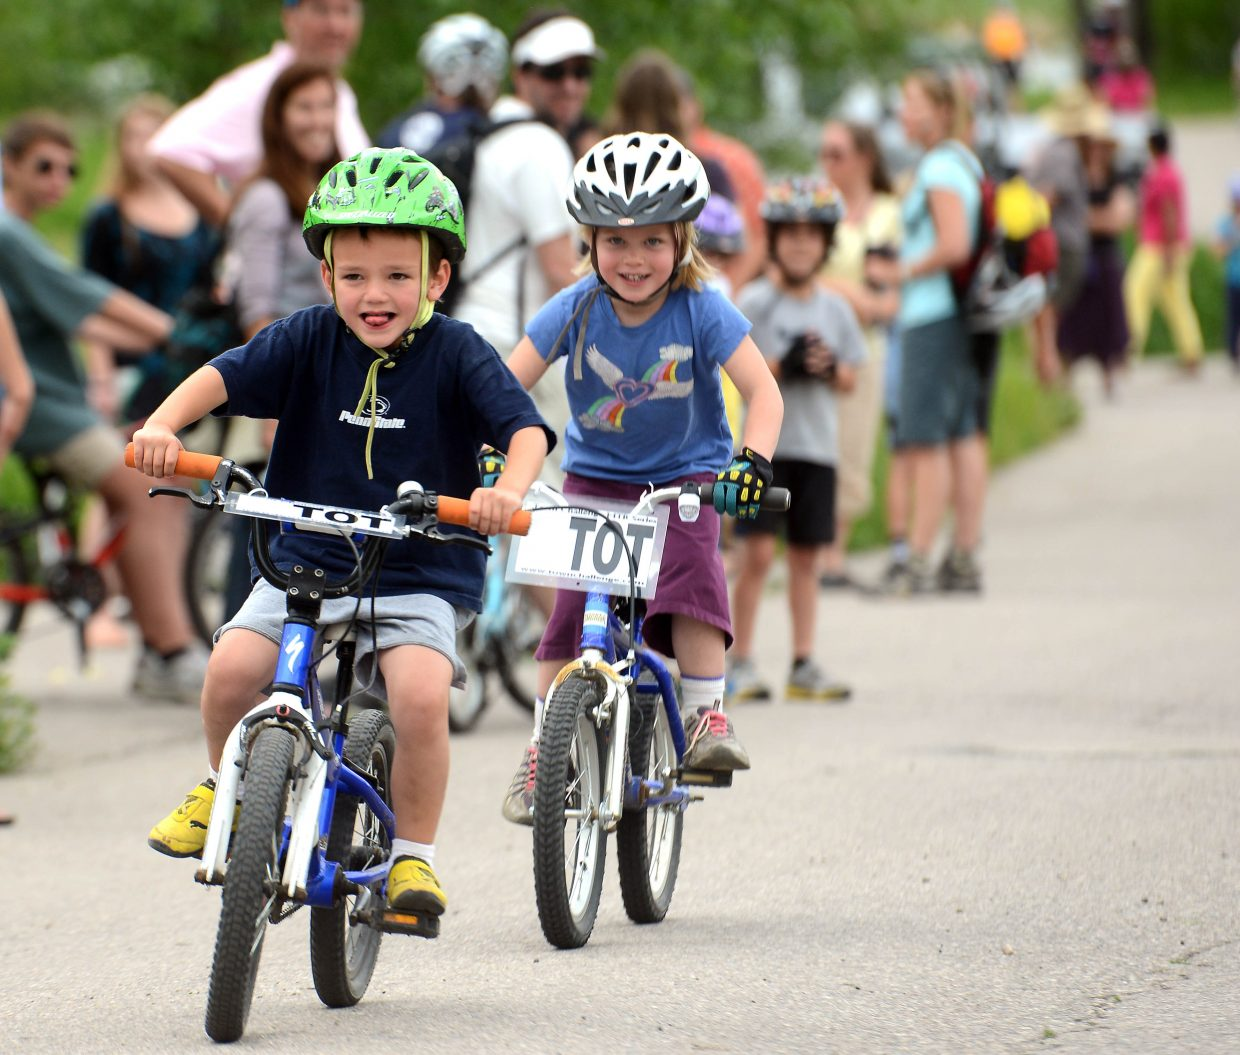 Hudson Merlina, 5, looks to his fans as he crosses the finish line during the 6-and-under race at Wednesday's Town Challenge event.